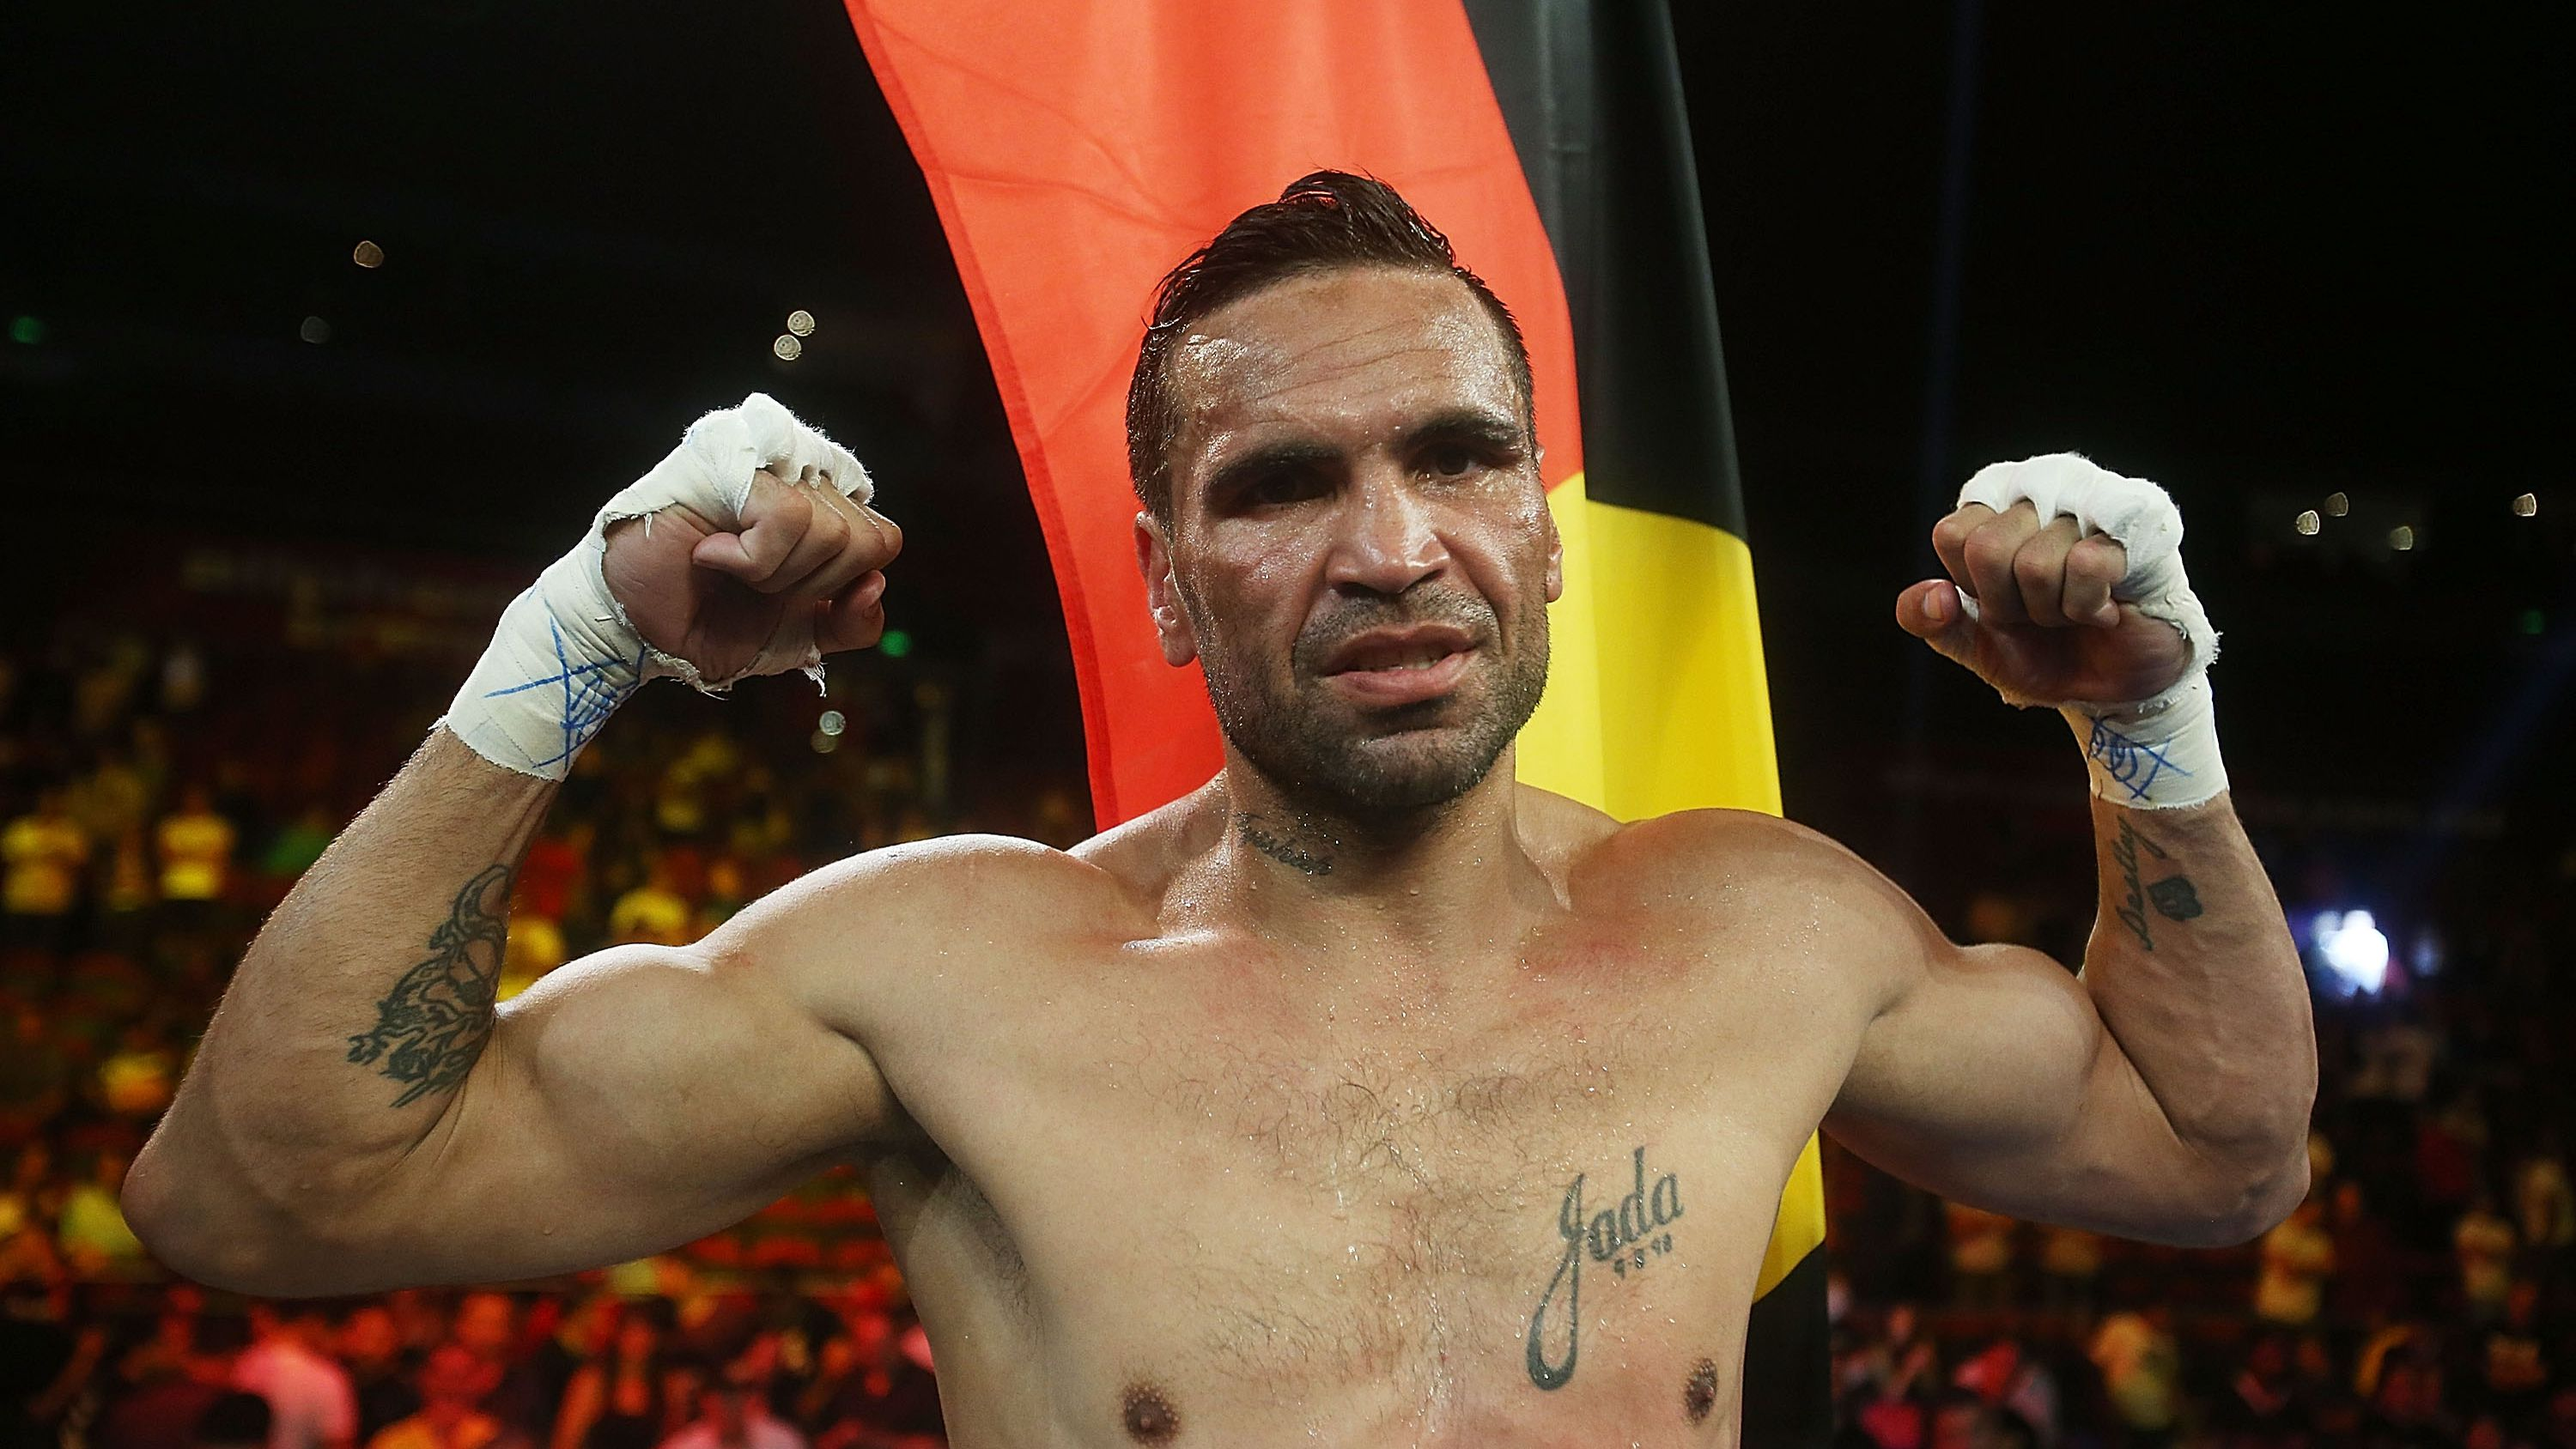 'One word ain't gonna change the core meaning': Anthony Mundine rejects national anthem tweak